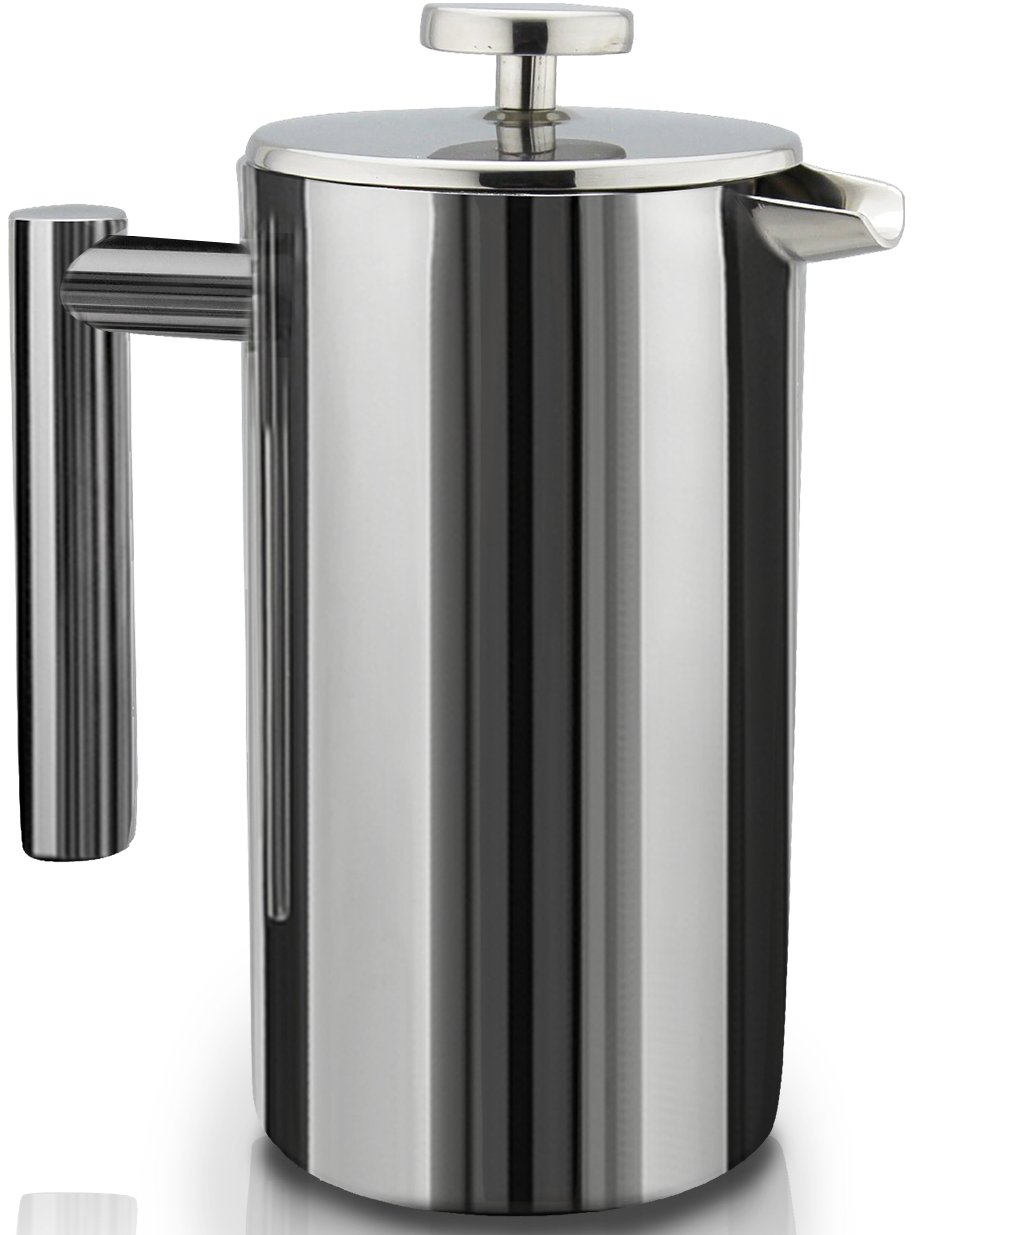 The SterlingPro Double Wall is arguably the best French coffee press at this price point.